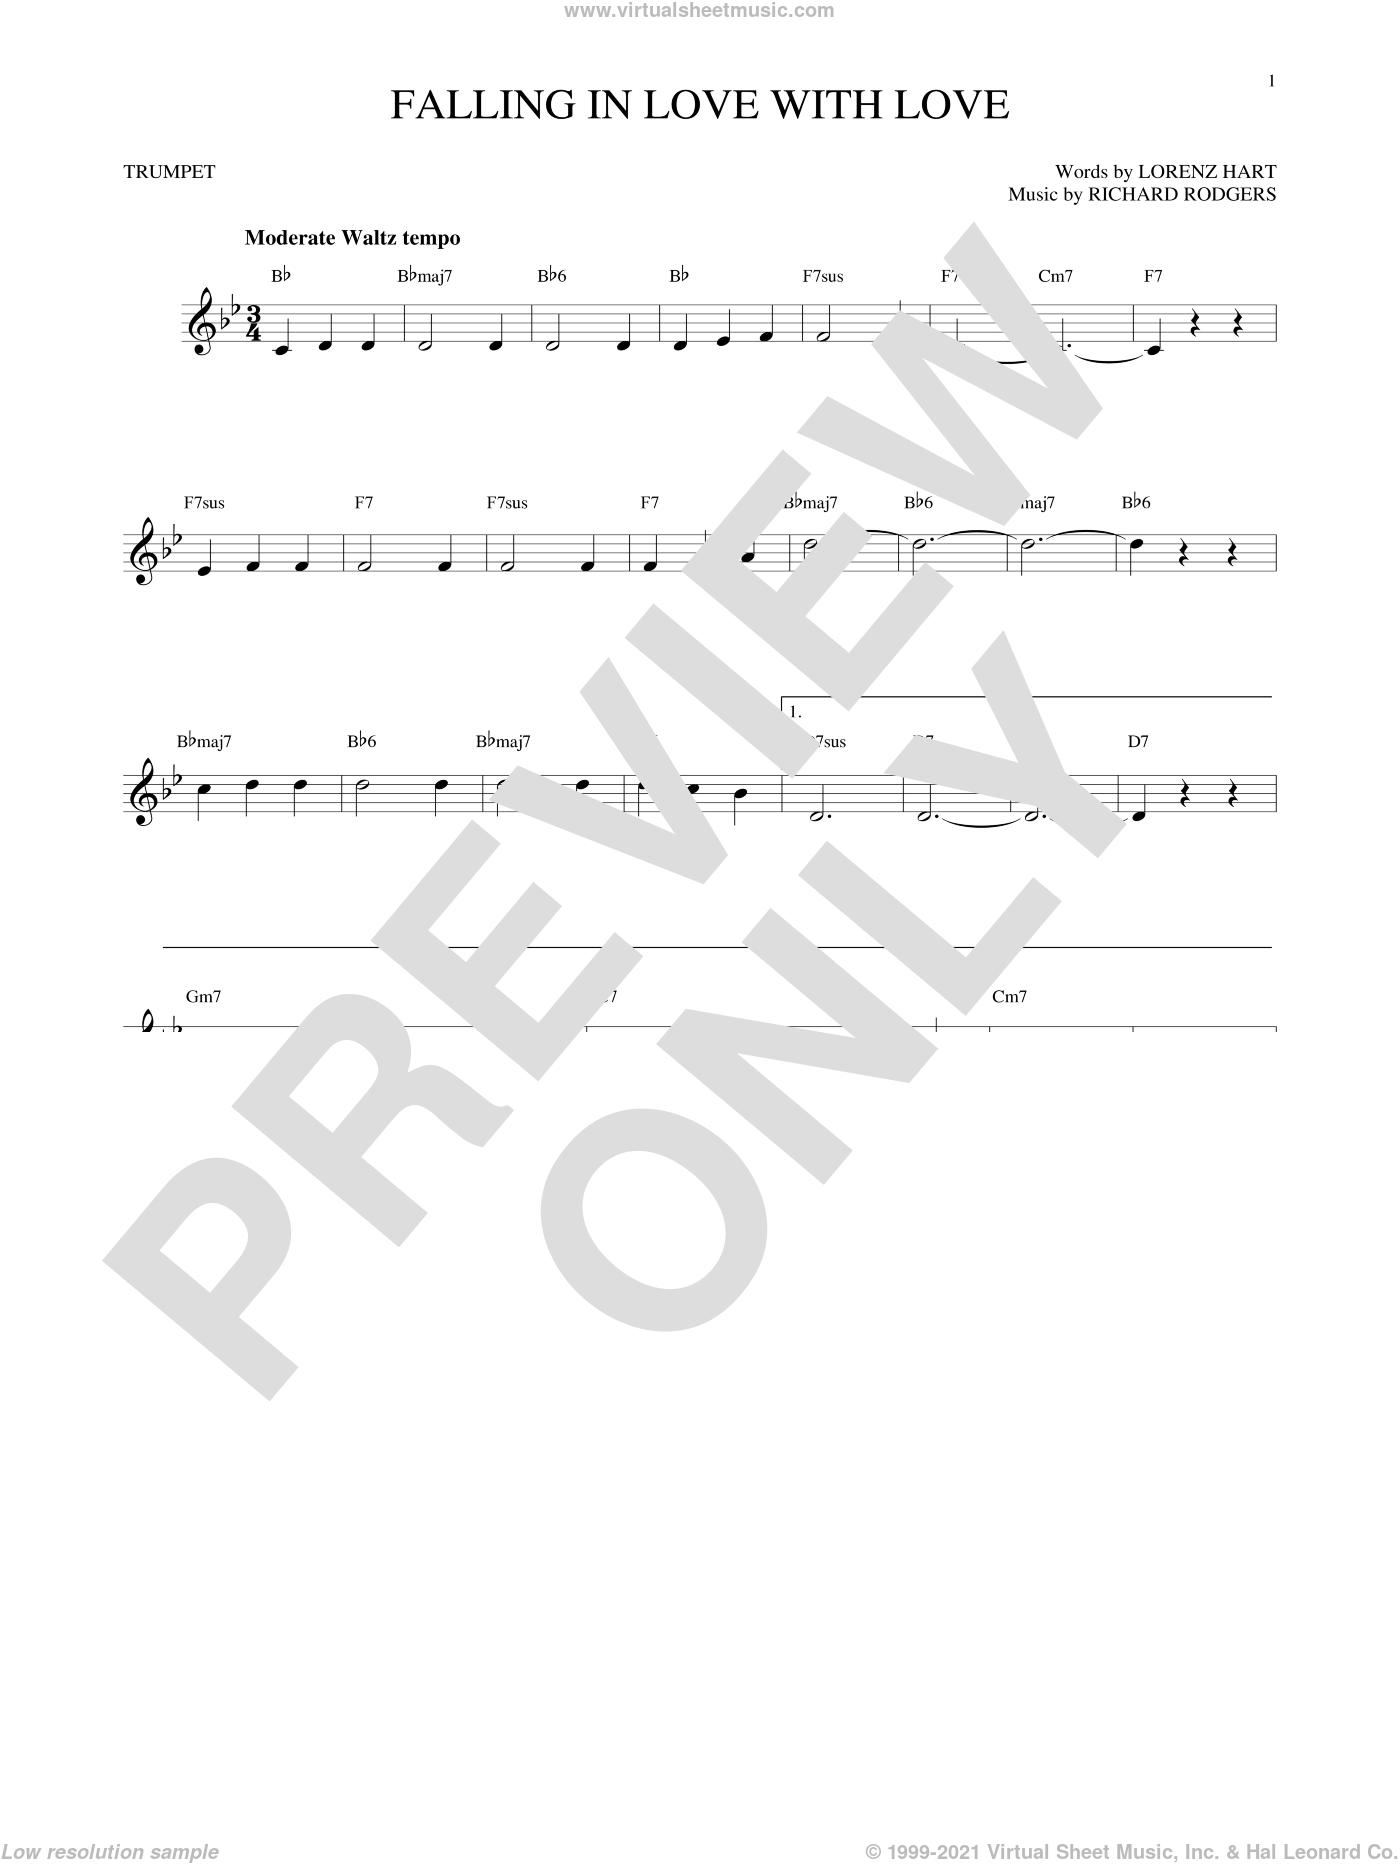 Falling In Love With Love sheet music for trumpet solo by Richard Rodgers, Lorenz Hart and Rodgers & Hart. Score Image Preview.